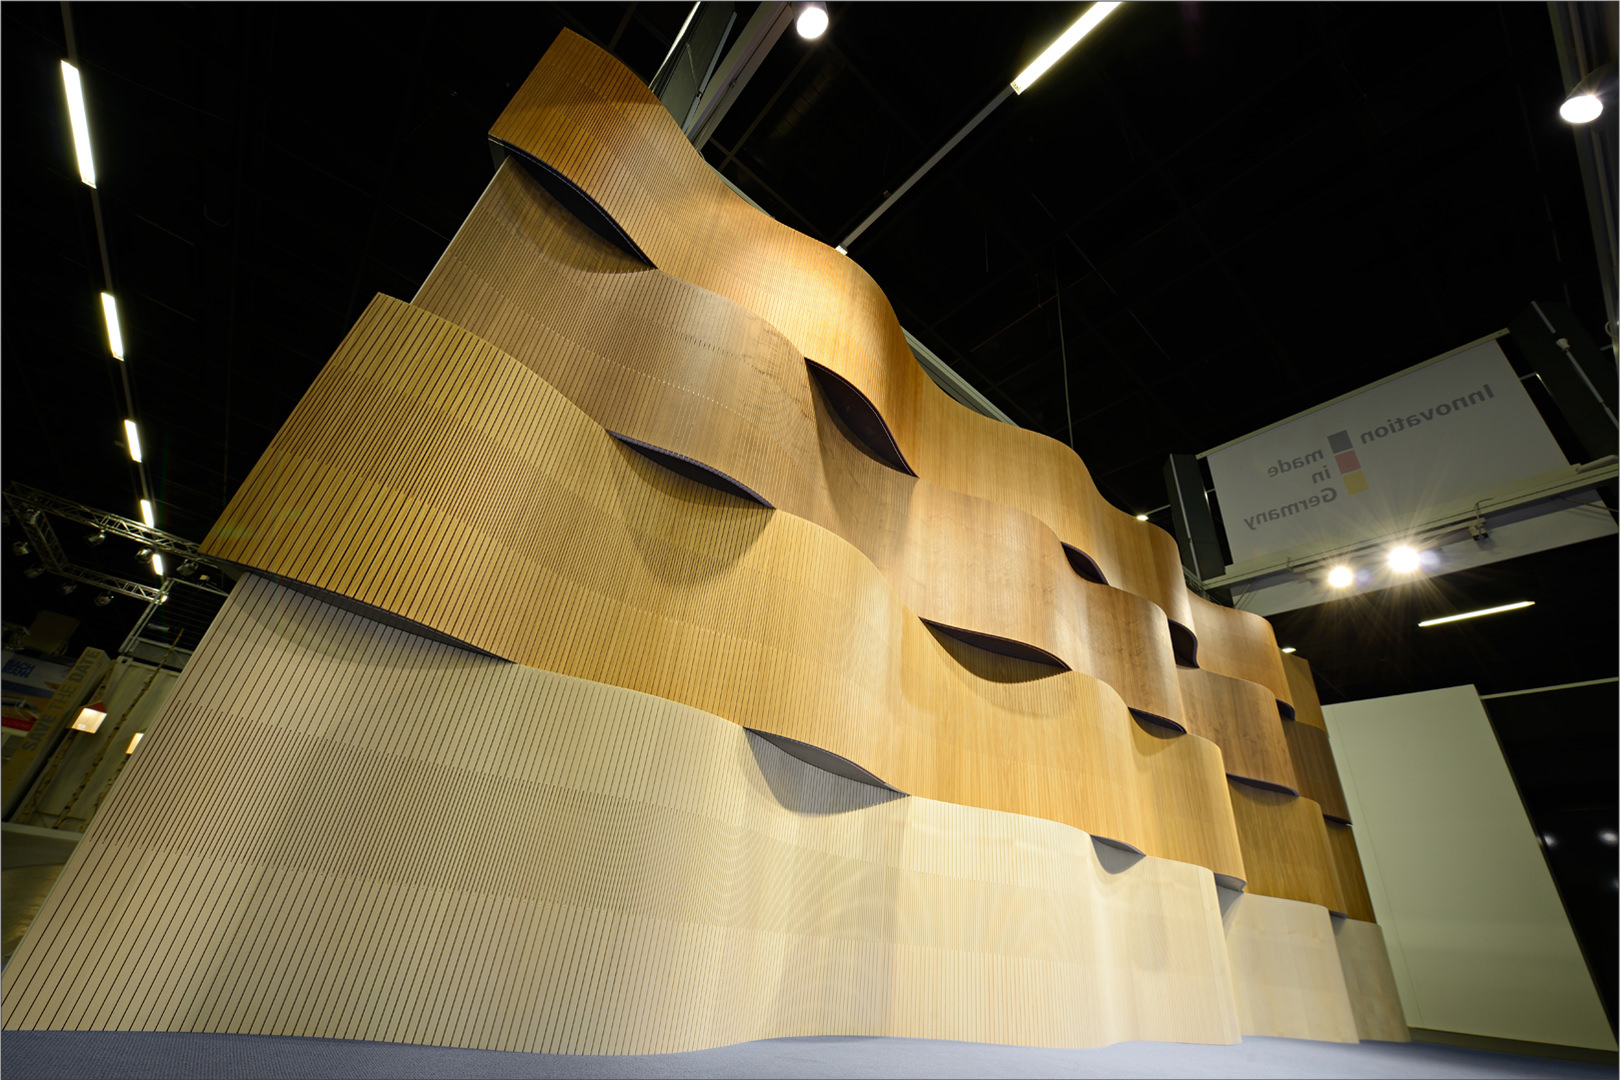 WAVY Acoustic – create a new architecture of interiorwalls and ceilings